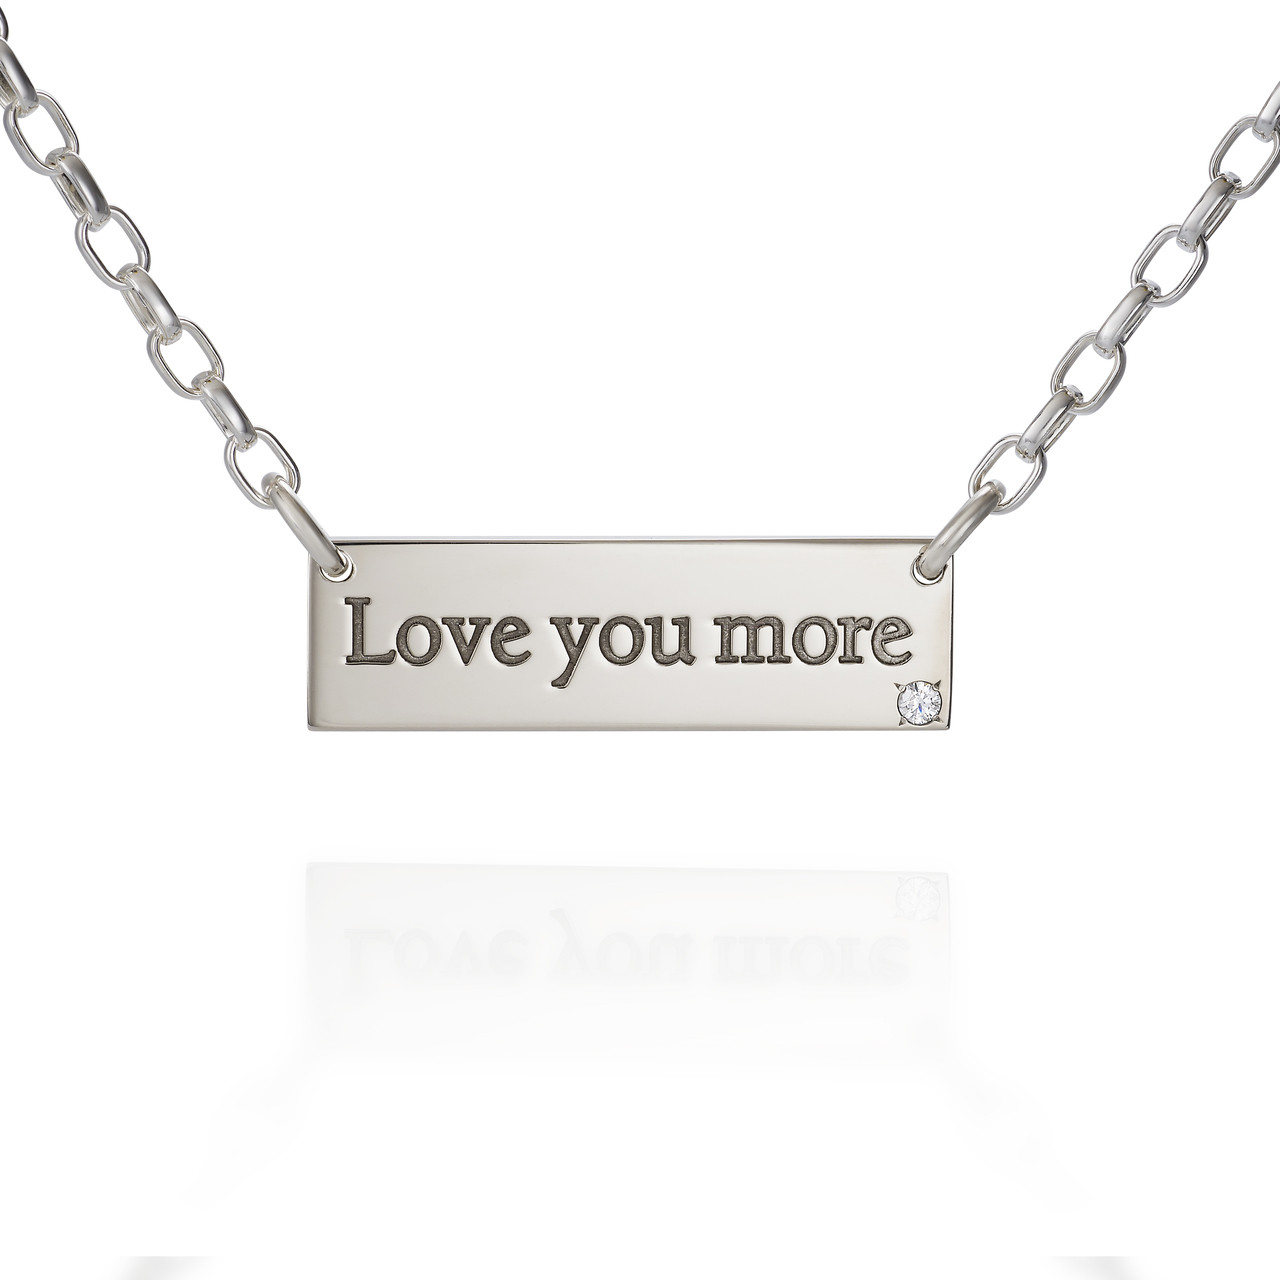 Love you more sterling silver bar necklace with diamond www love you more sterling silver bar necklace with diamond aloadofball Image collections